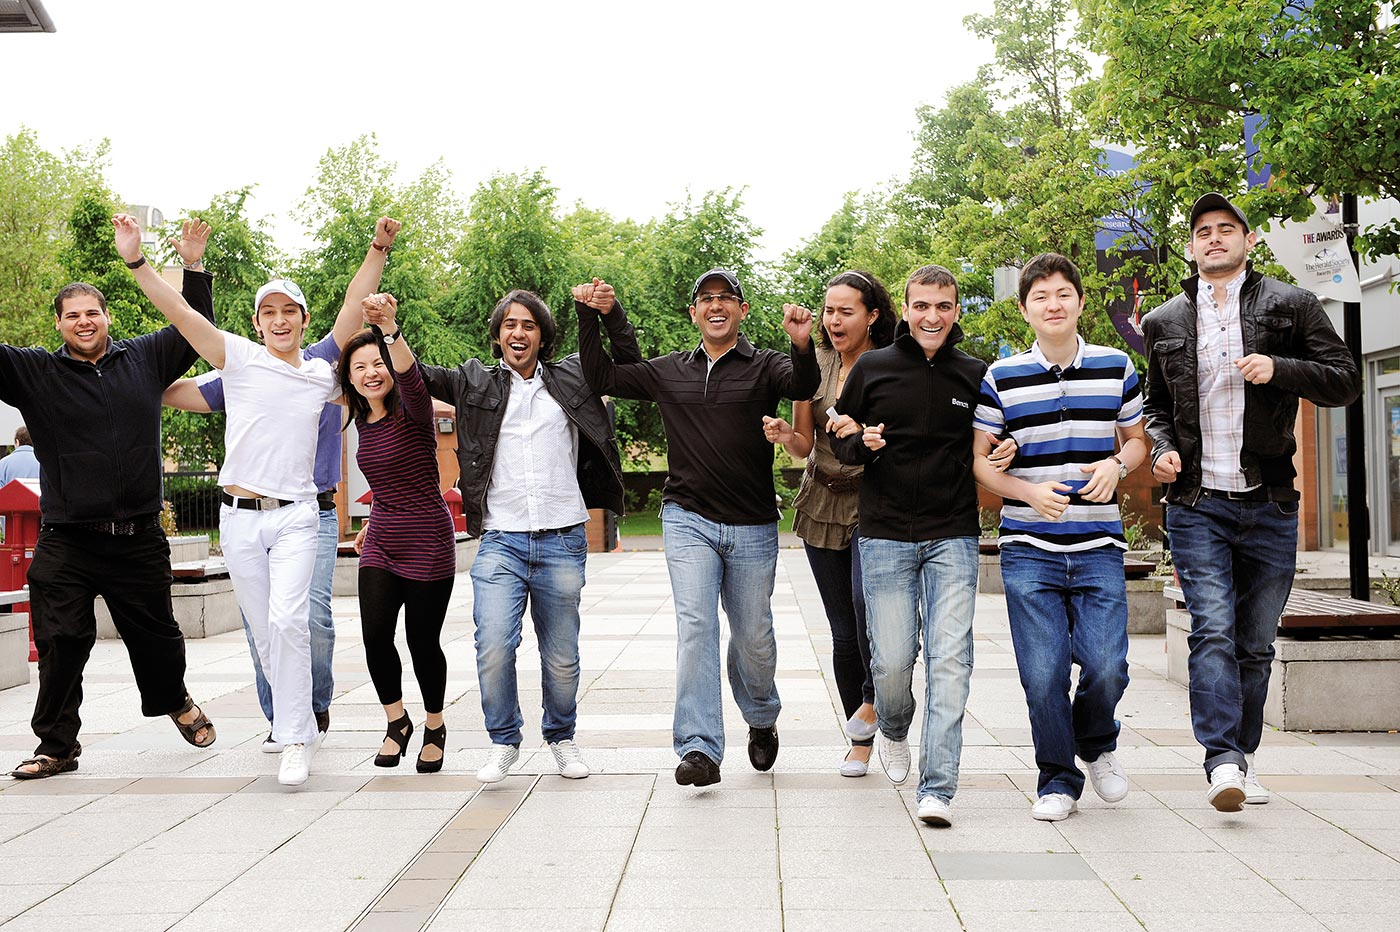 Latest Admission Requirements for International Undergraduate and Postgraduate Students at the Universities in Canada